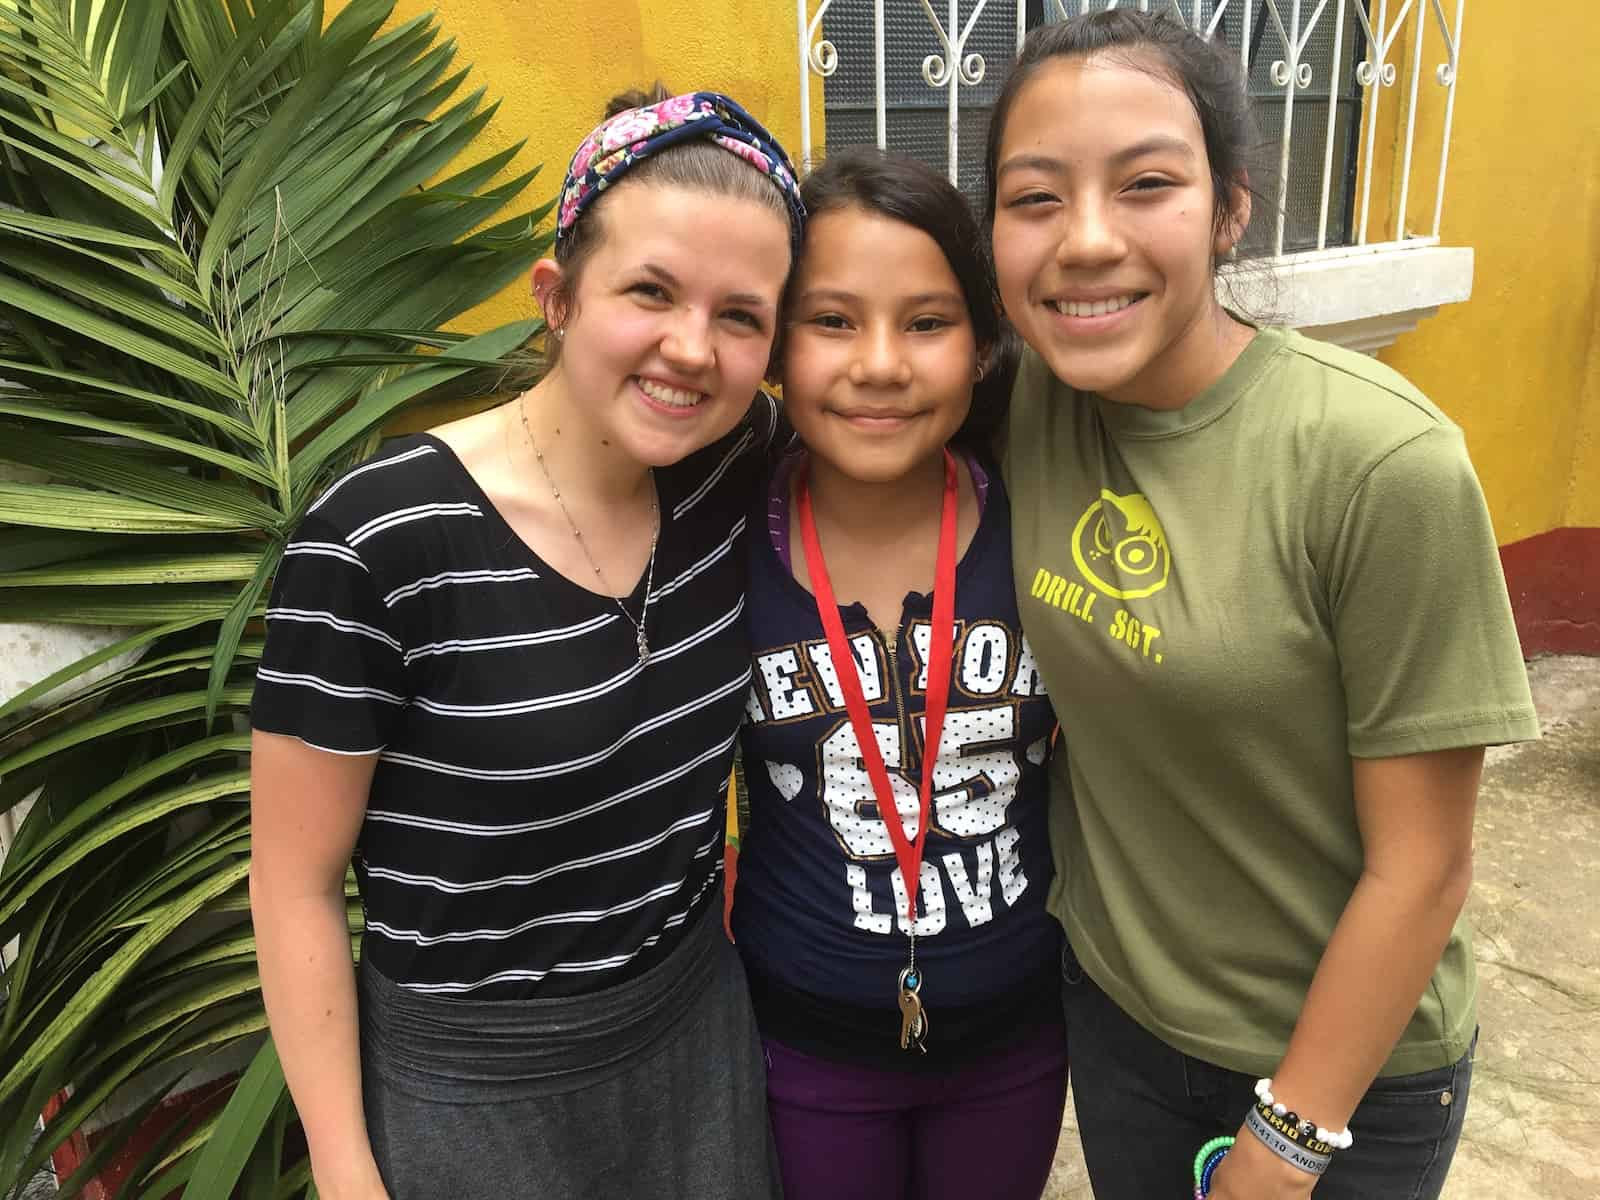 A young woman poses with two Guatemalan girls